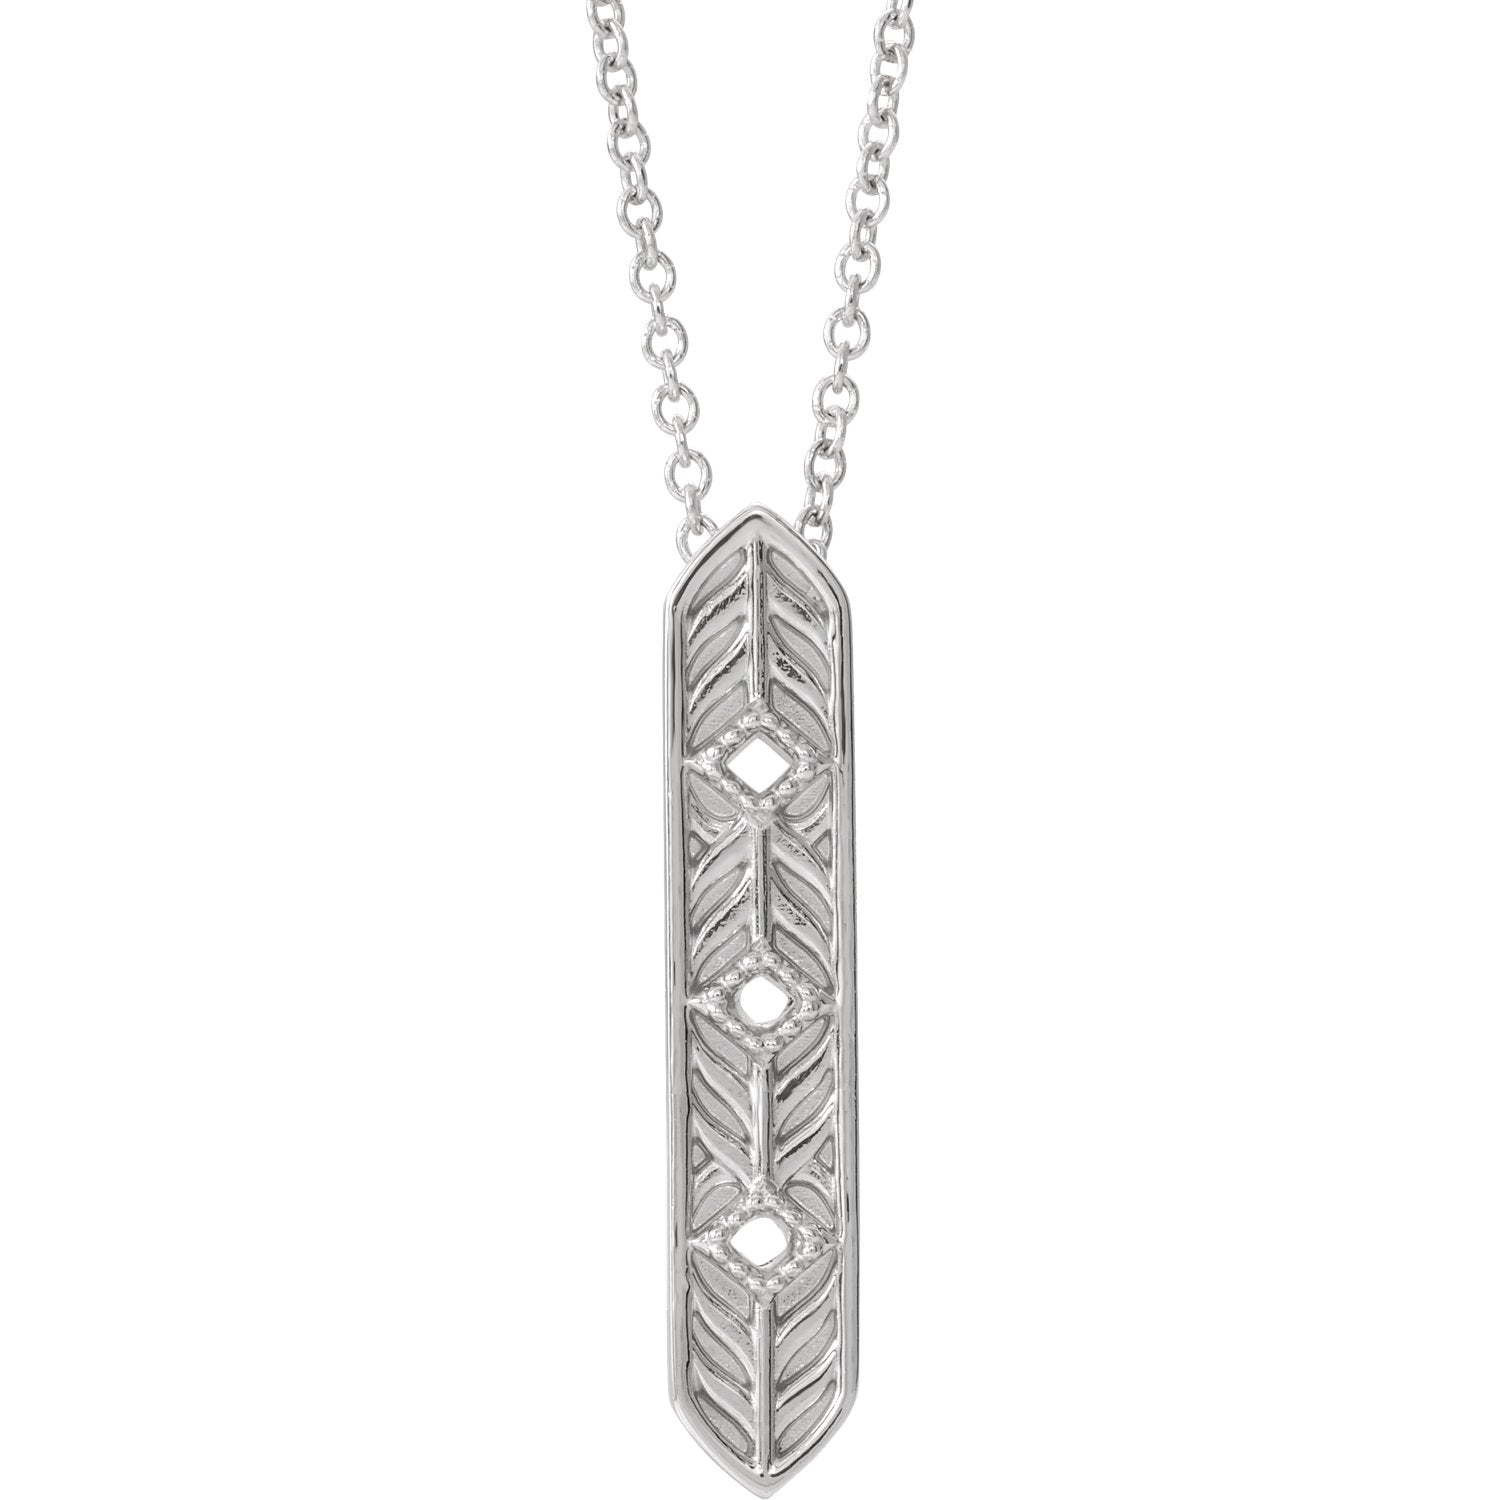 Vintage-Inspired Vertical Bar Necklace